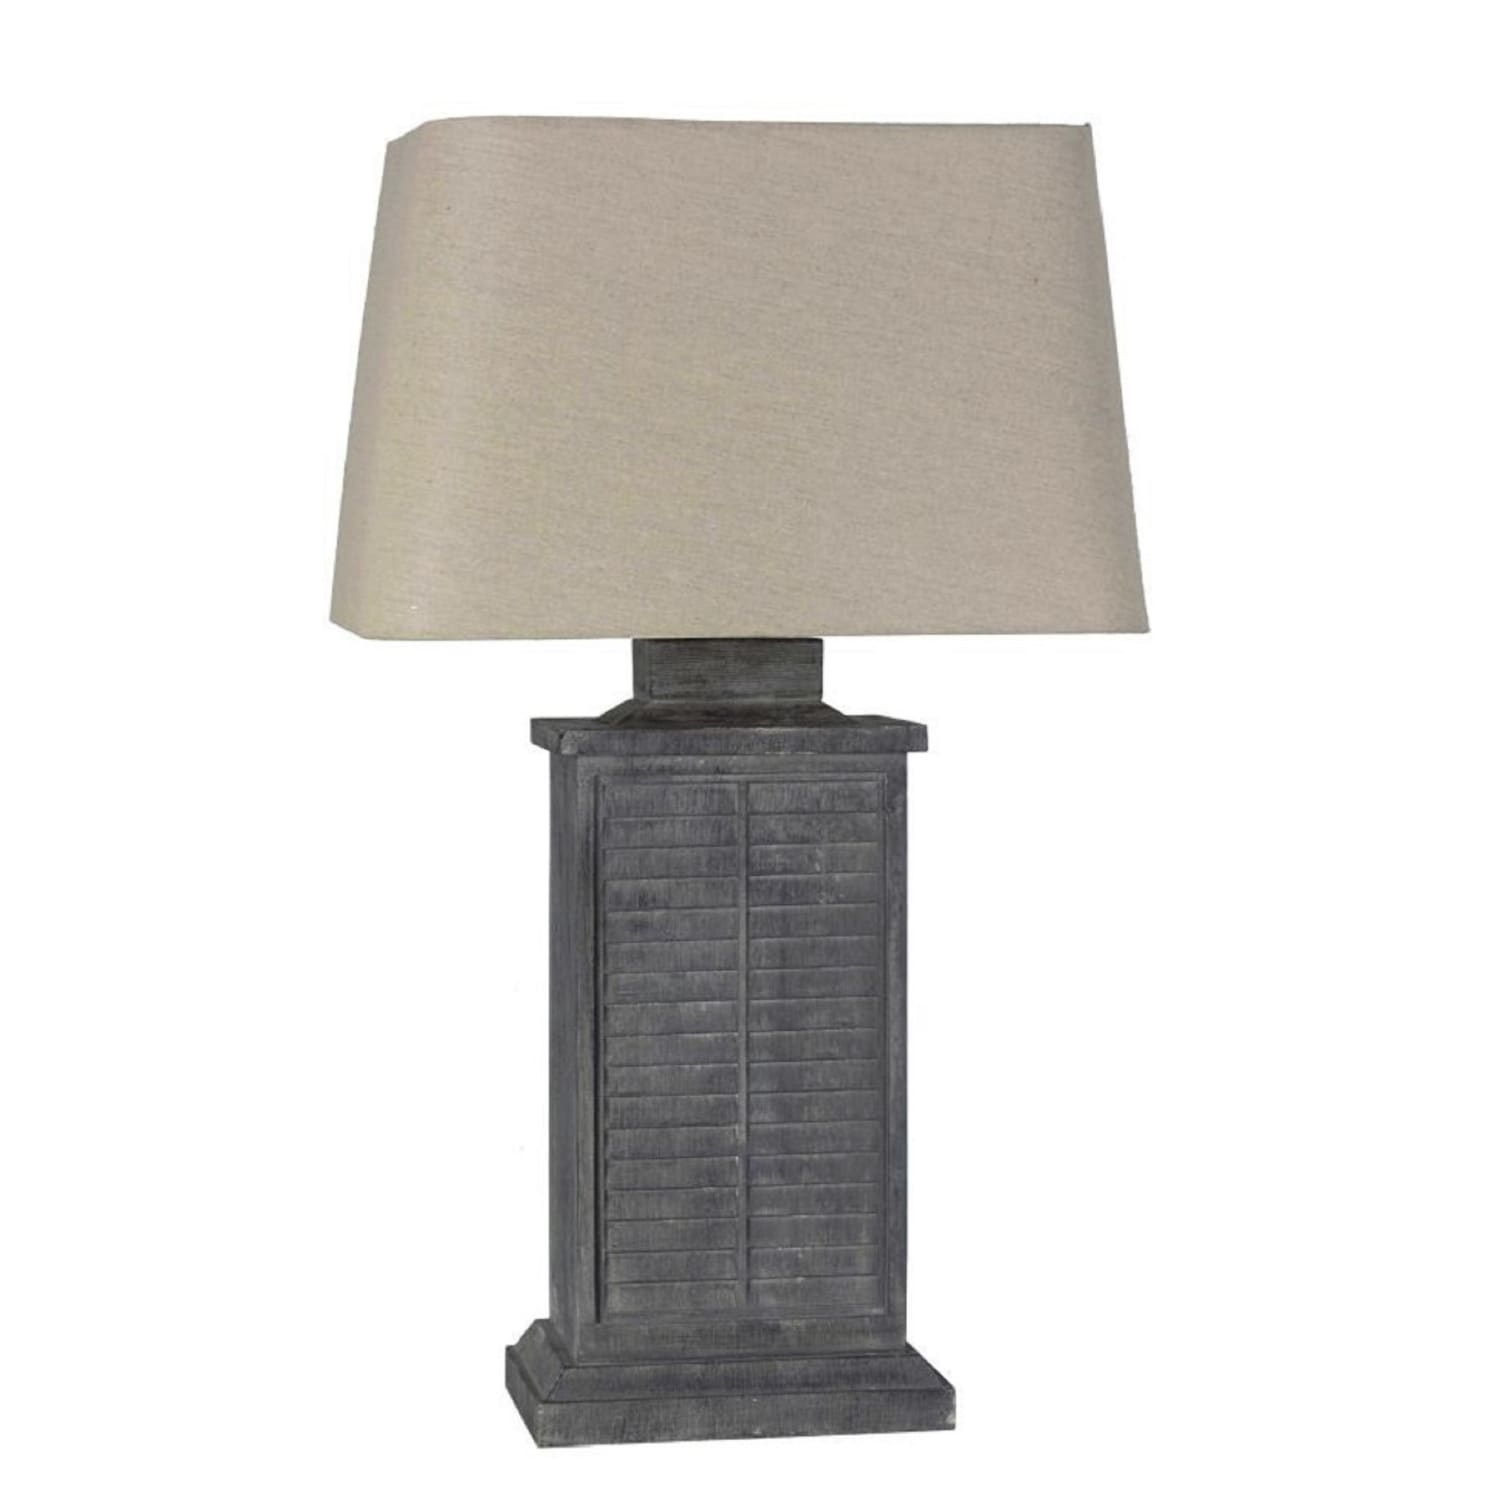 lamps per se 29 5 inch grey shutter indoor outdoor table lamp n a